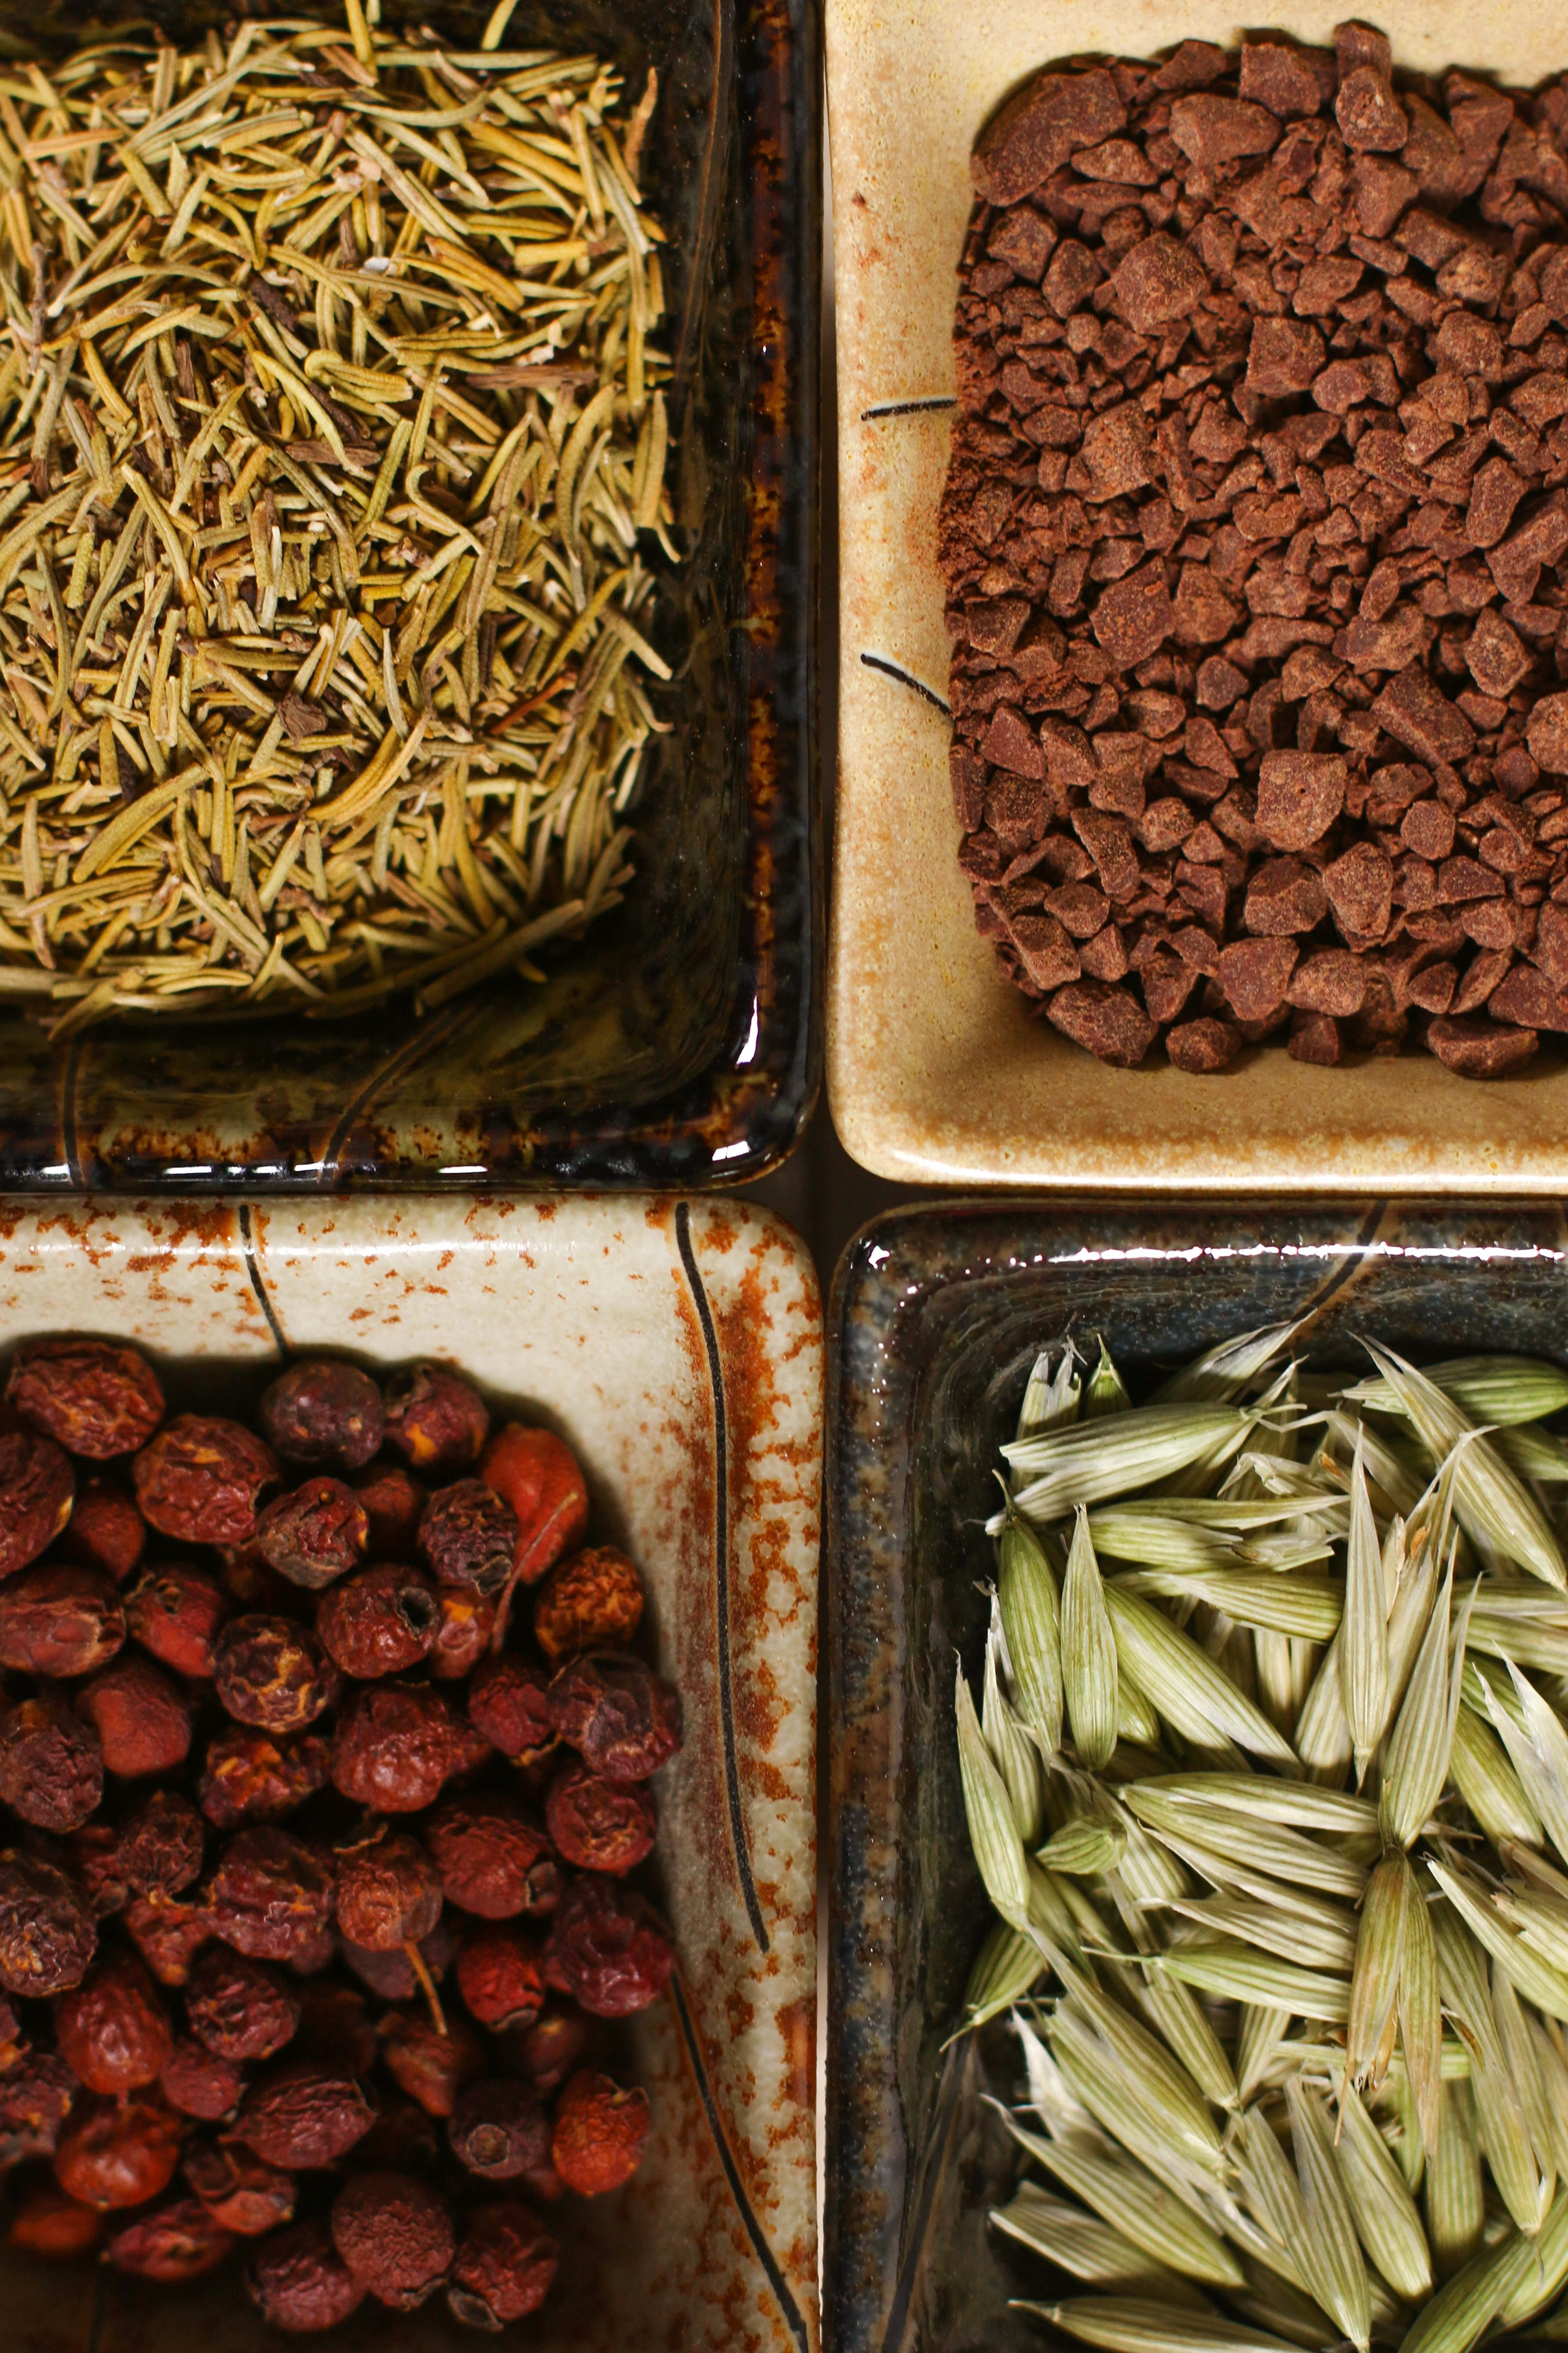 square-dishes-of-dried-herbs-for-heart-health-with-hawthorn-berries-cacao-oat-tops-and-rosemary